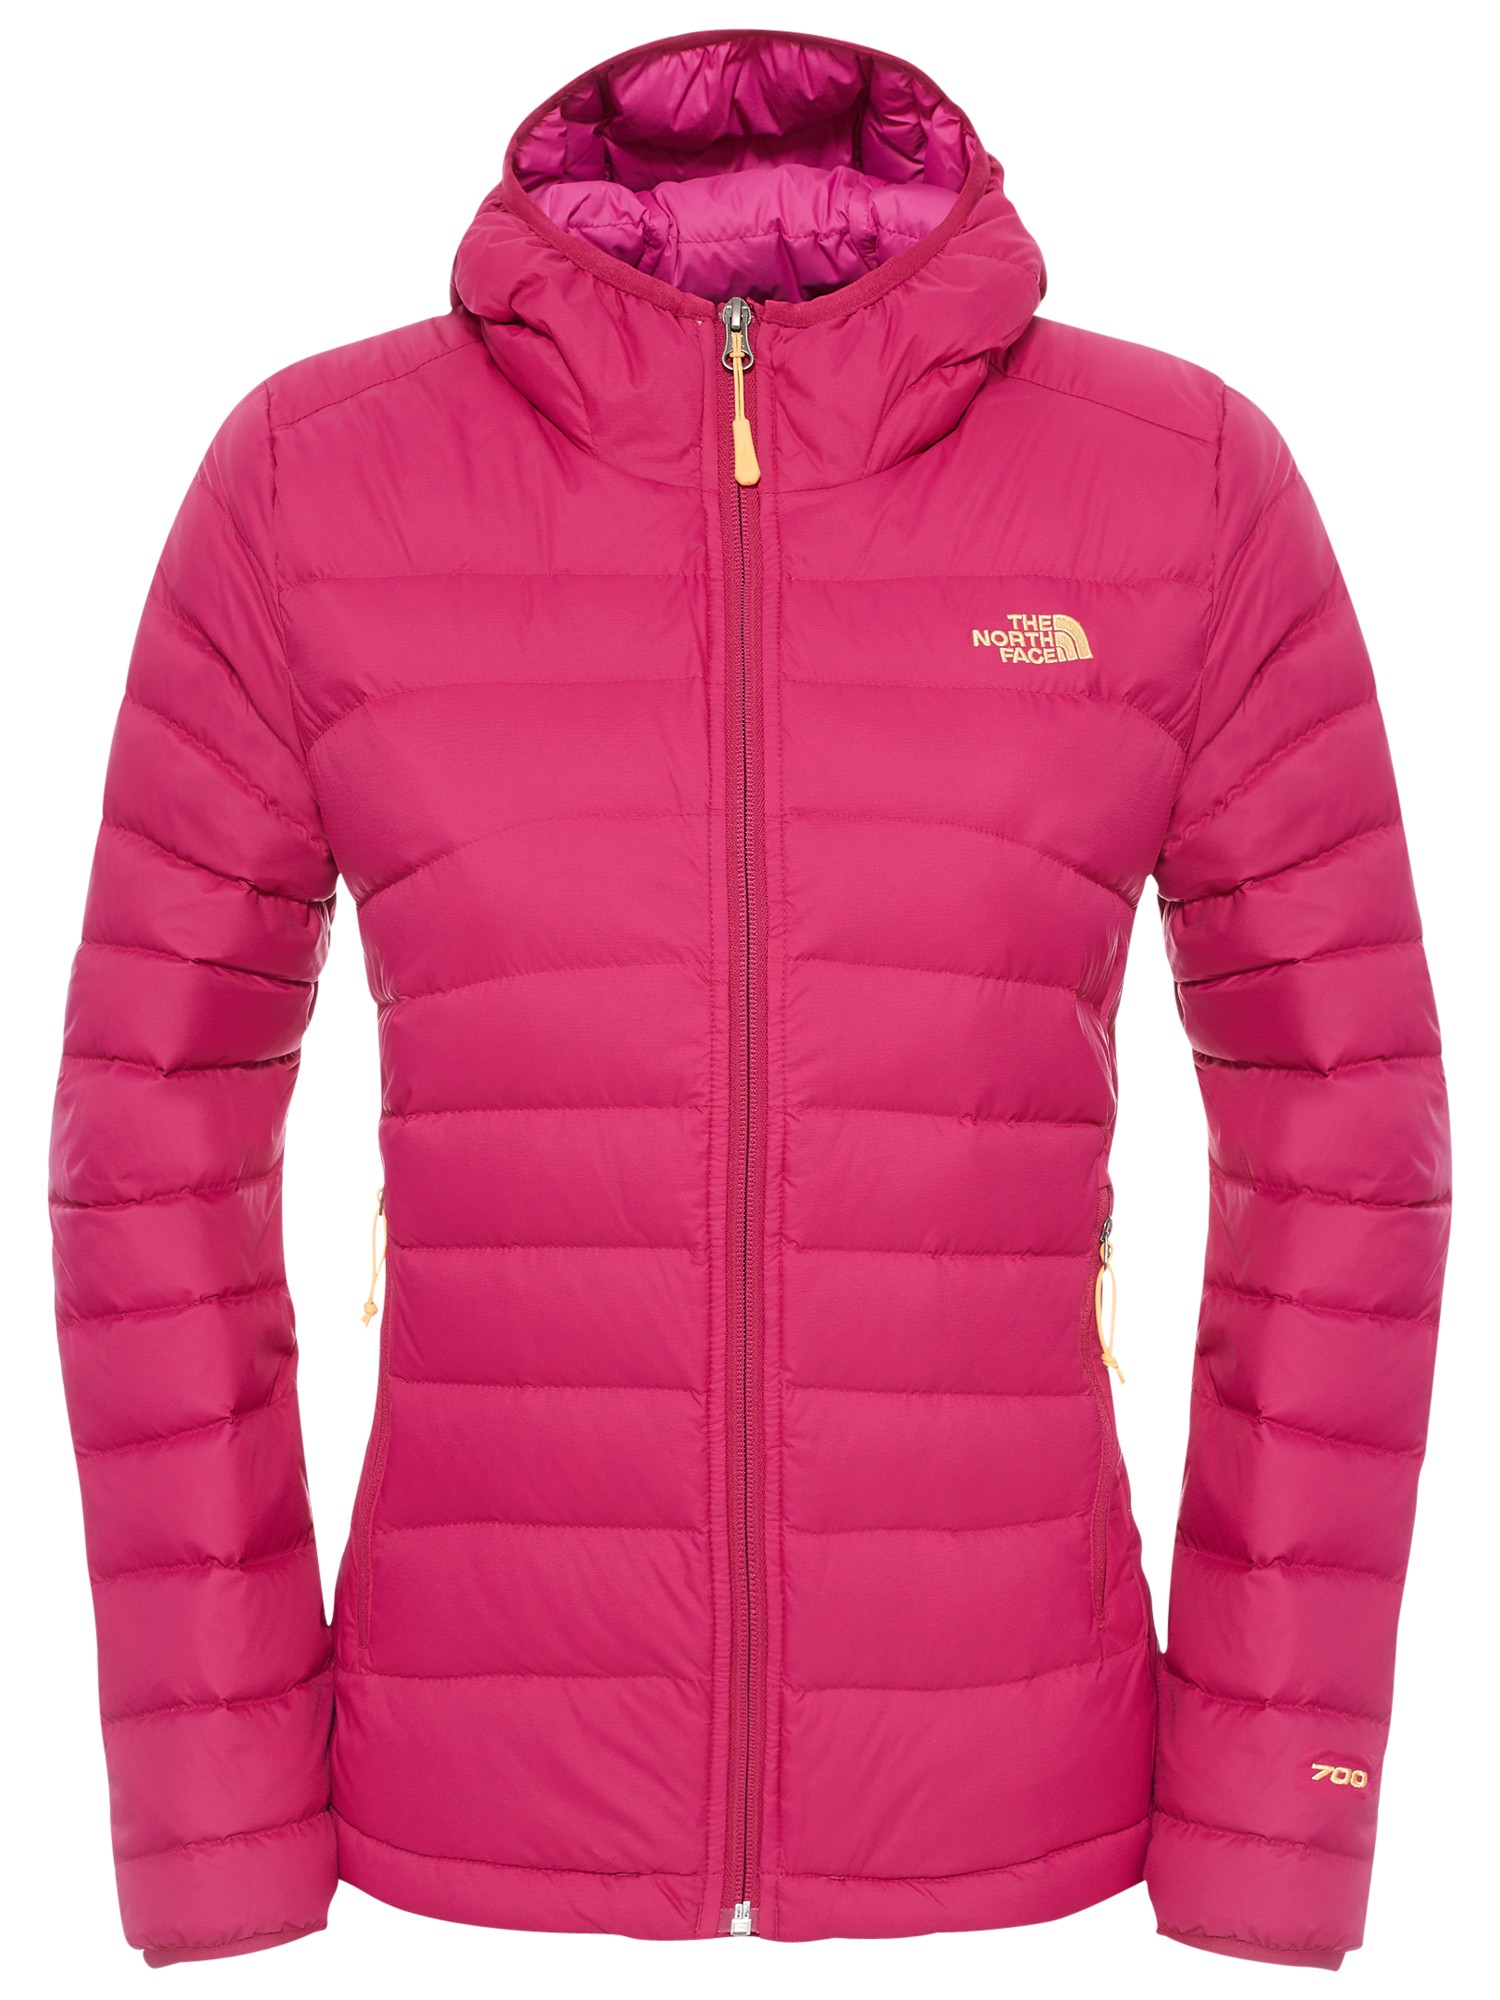 Lyst The North Face Mistassini Hooded Women S Jacket In Pink